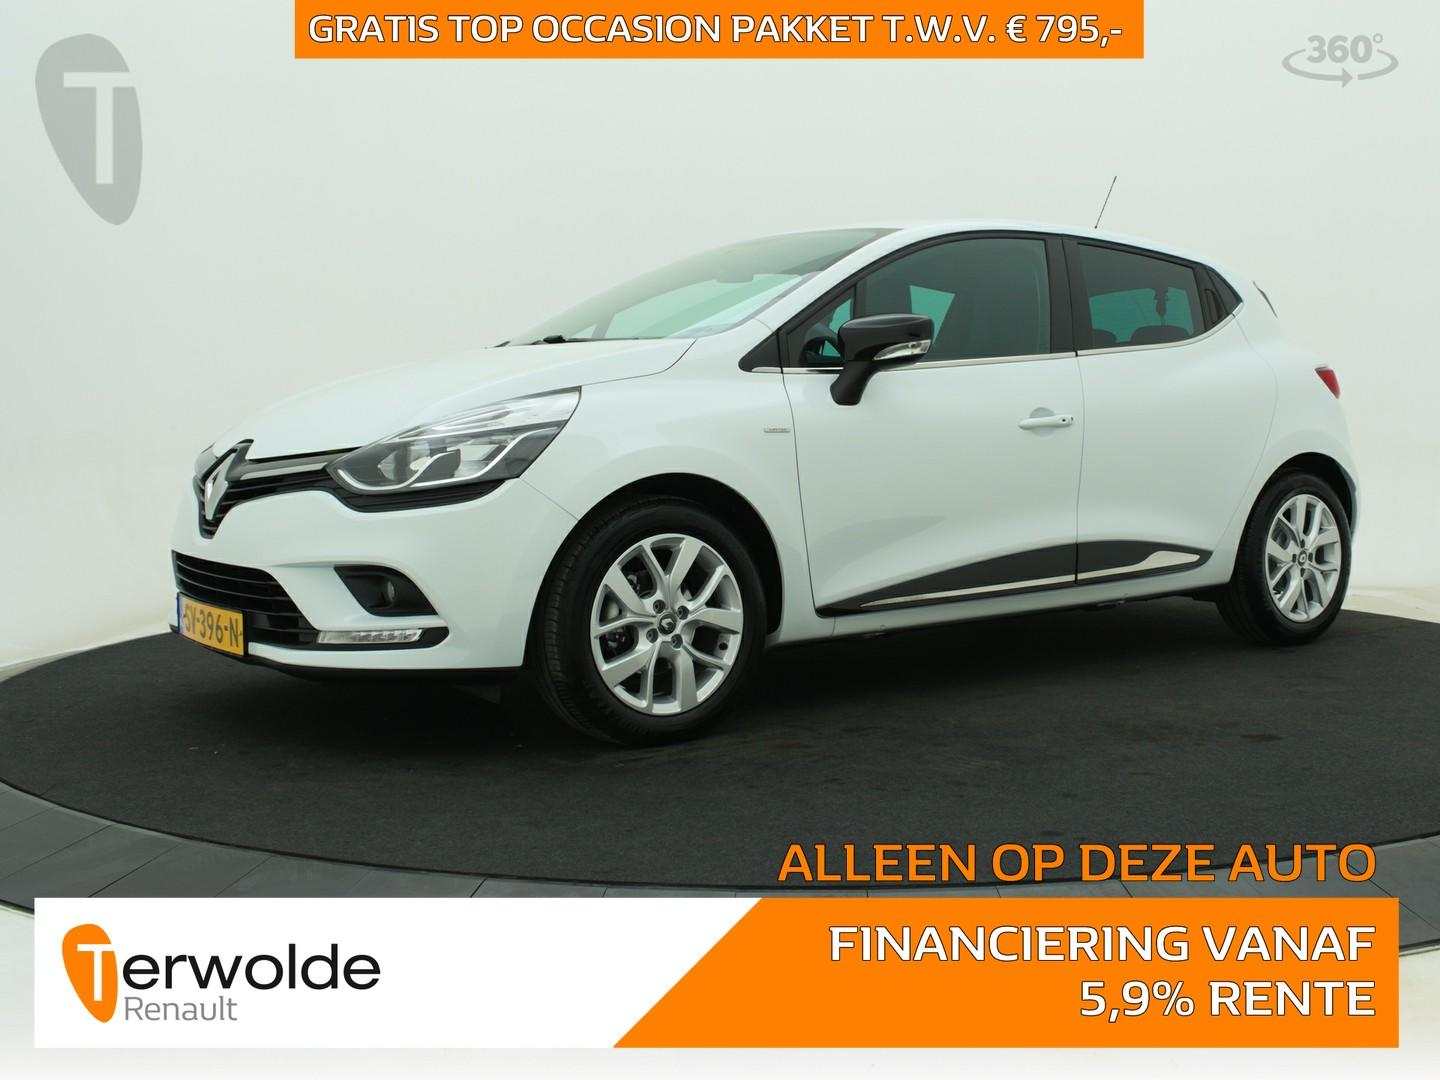 Renault Clio 90 pk tce limited full map navigatie i cruise control i airco